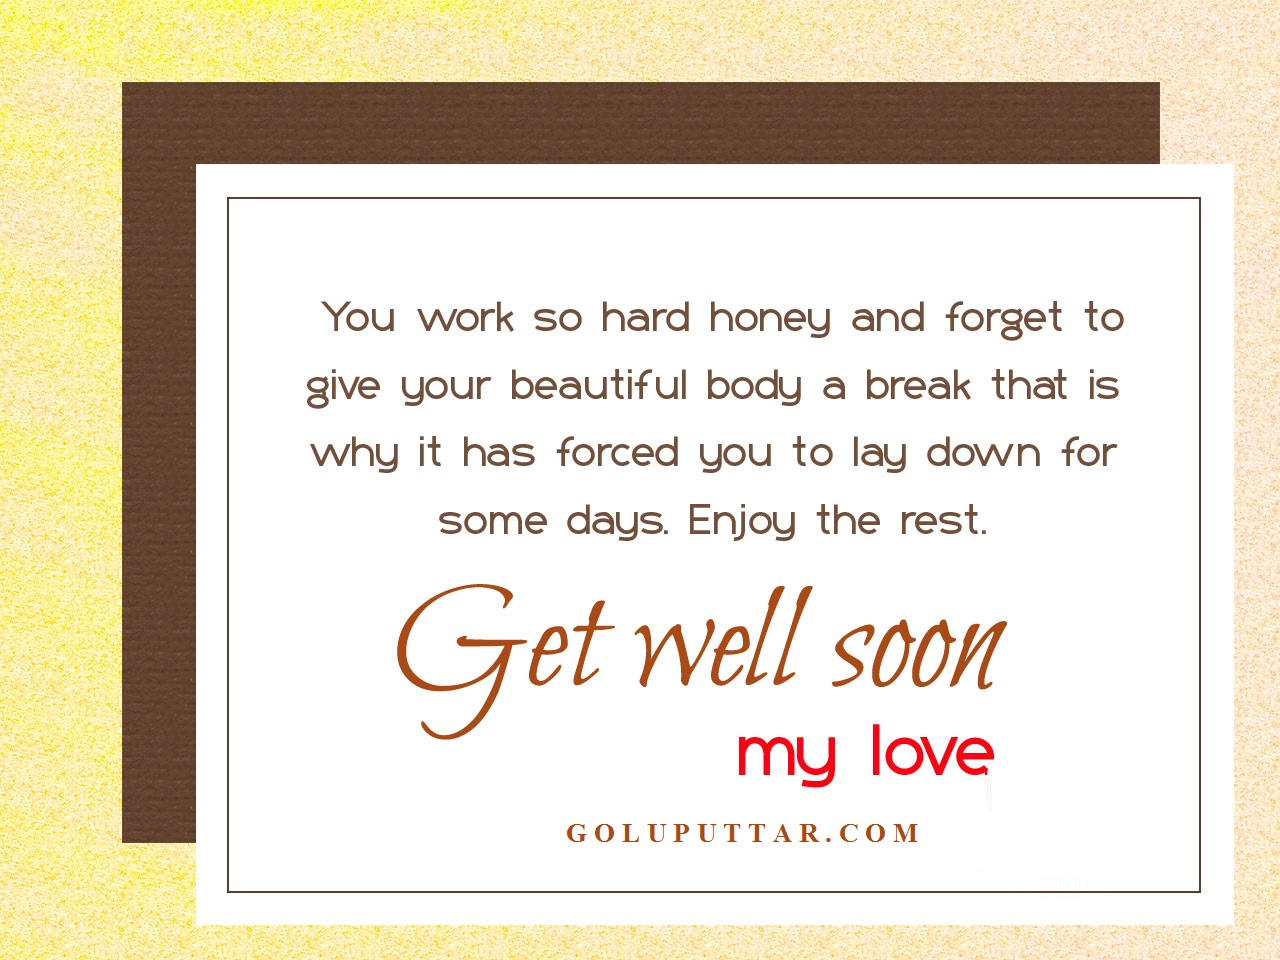 get well soon quotes and sayings for friends - 069